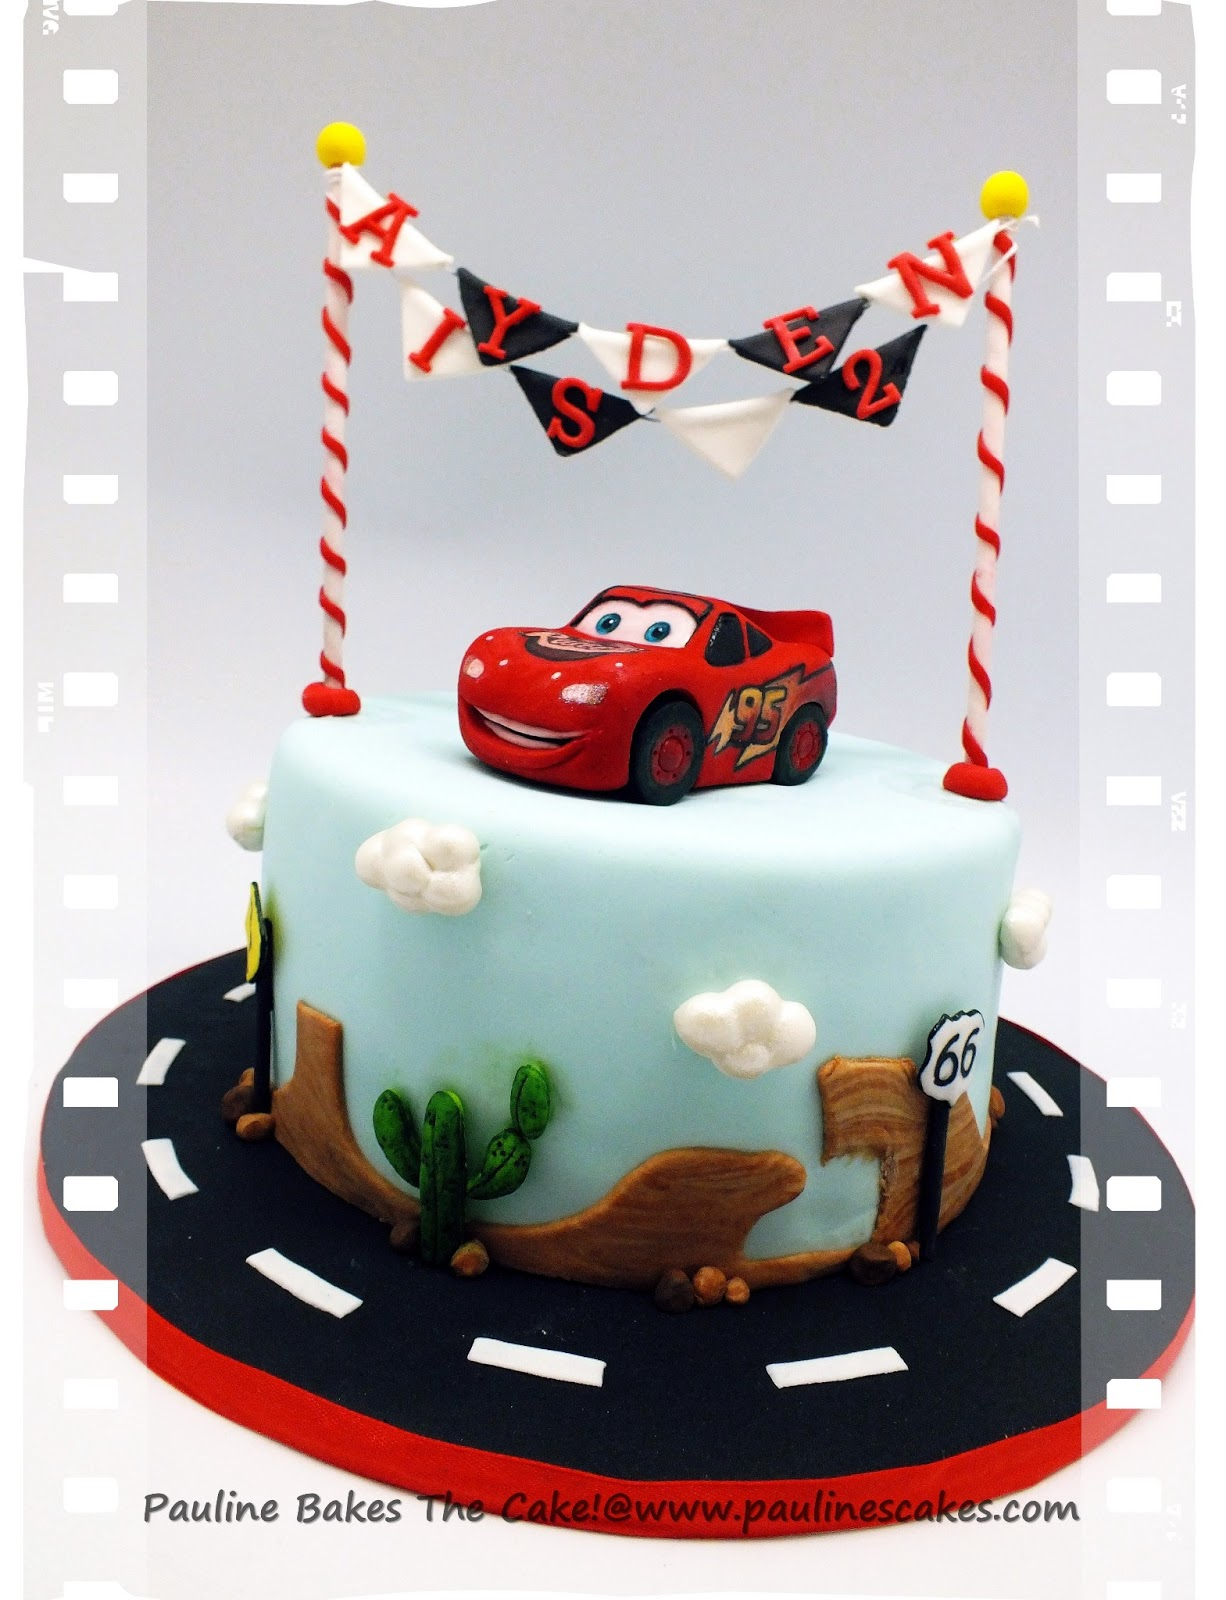 Mcqueen Car Cake Decoration : PAULINE BAKES THE CAKE!: